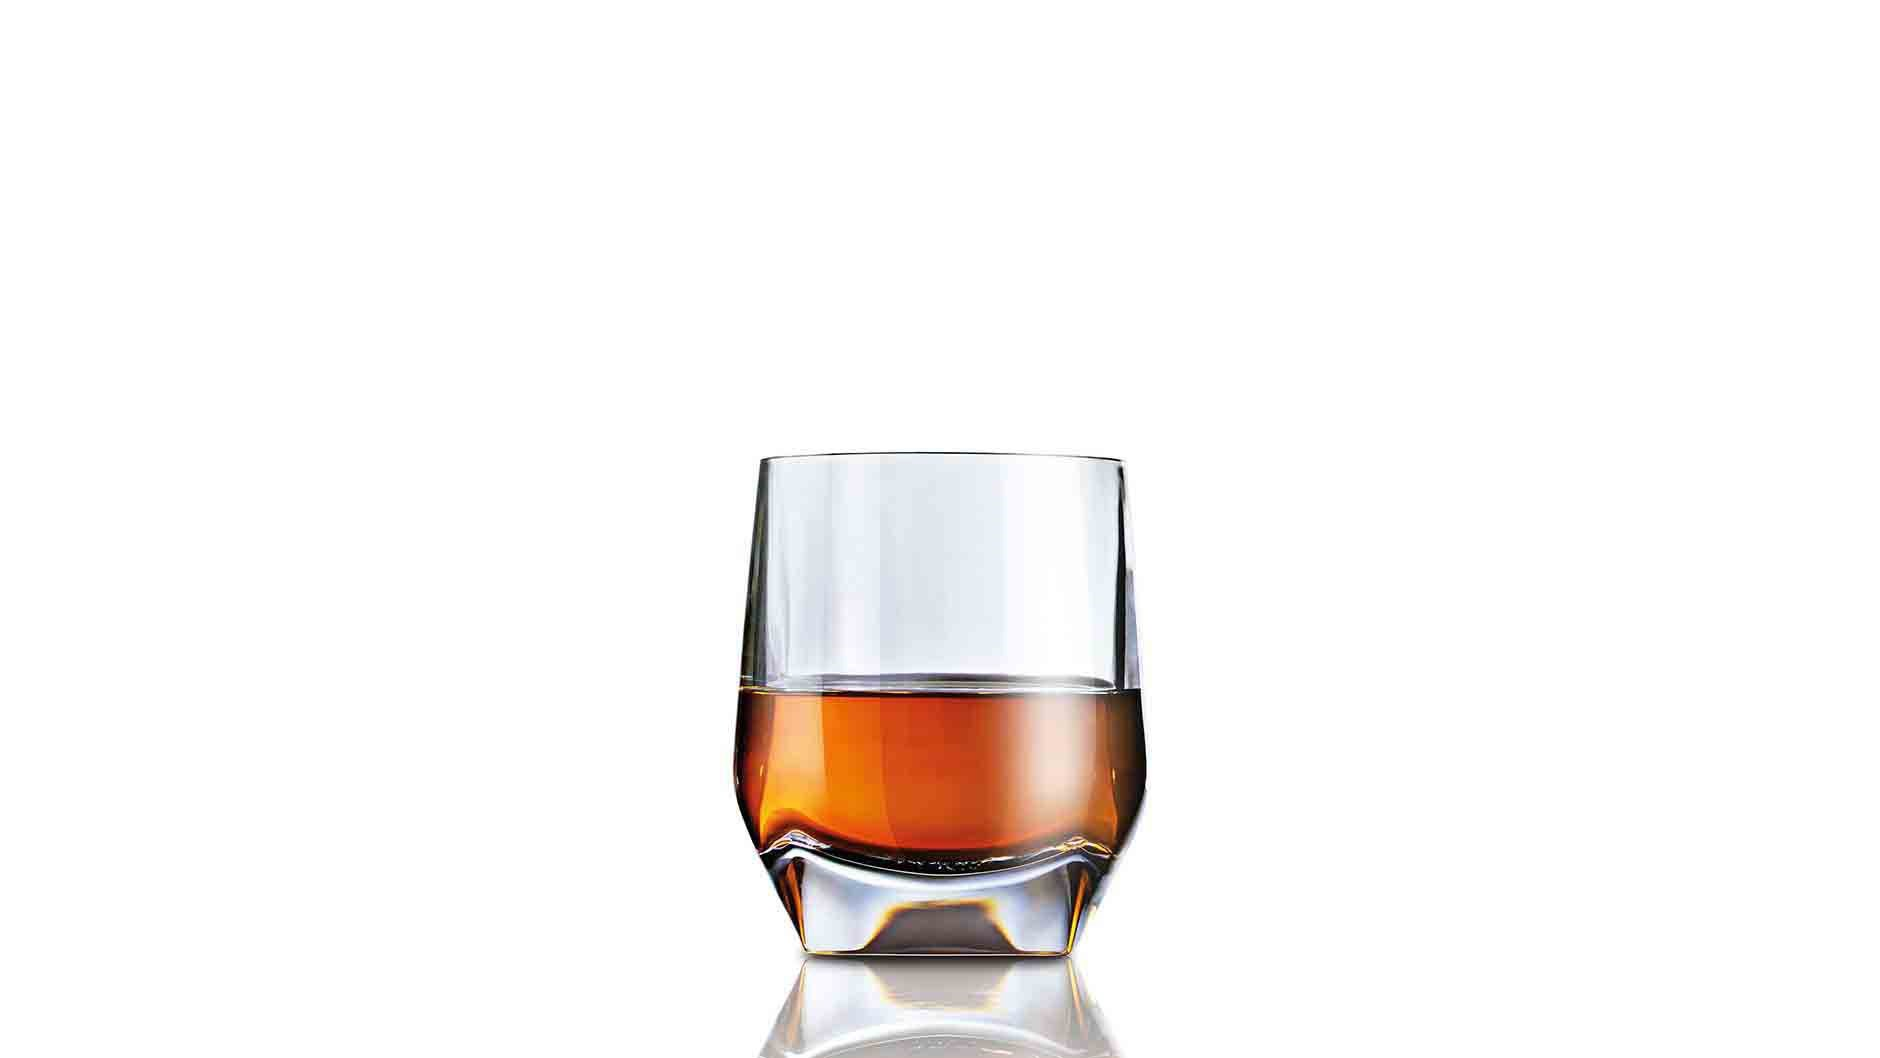 John Walker & Sons XR 21 Perfect Serve in a tumbler